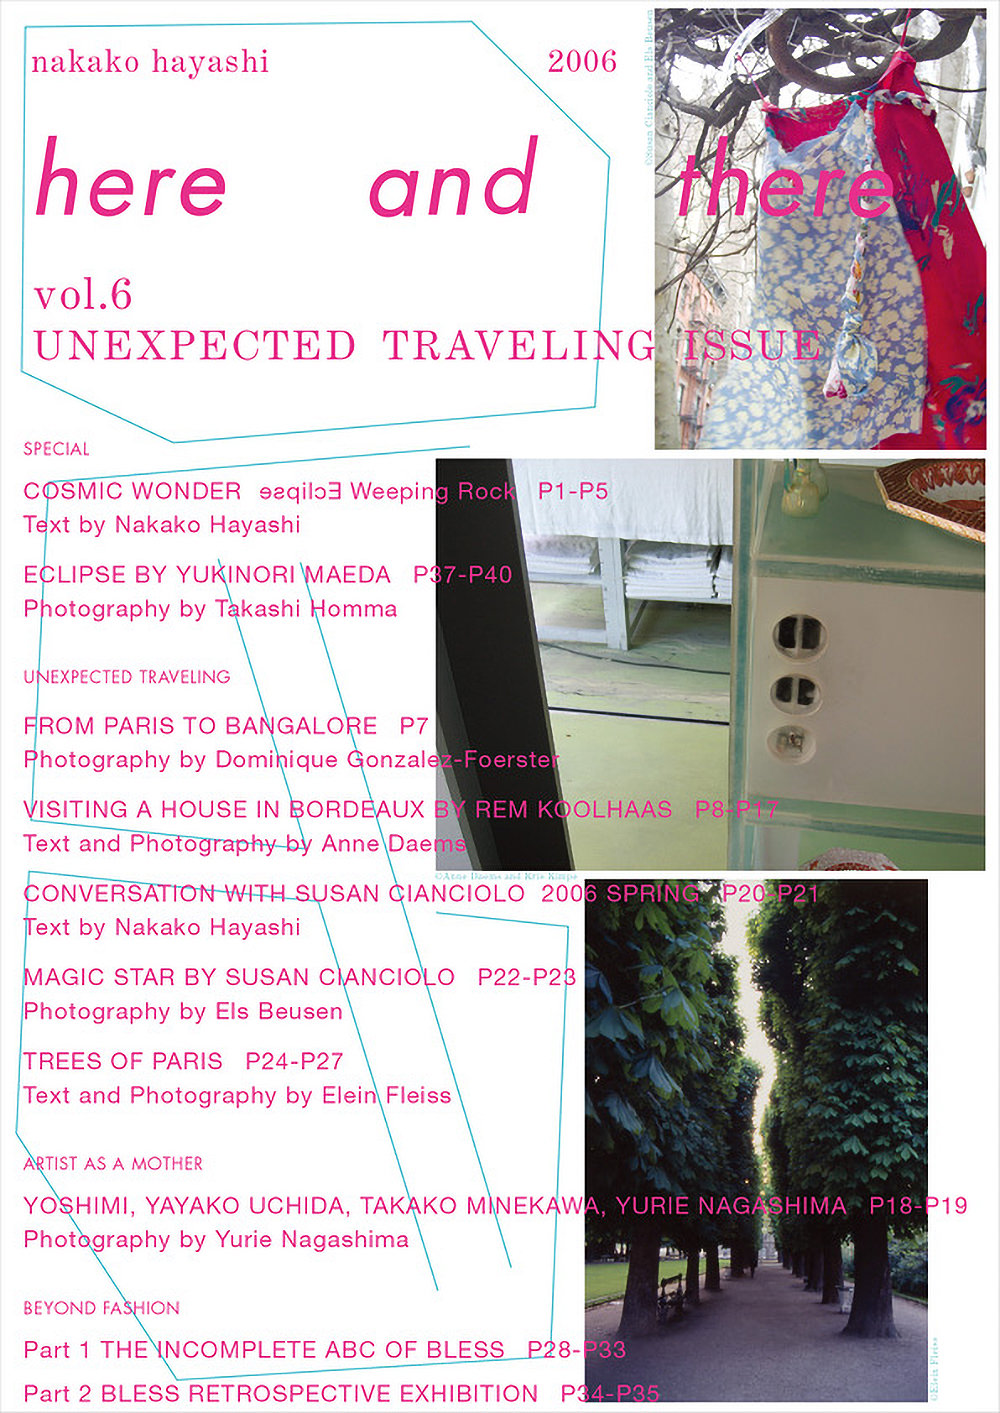 here and there vol.6 2006 UNEXPECTED TRAVELING ISSUE